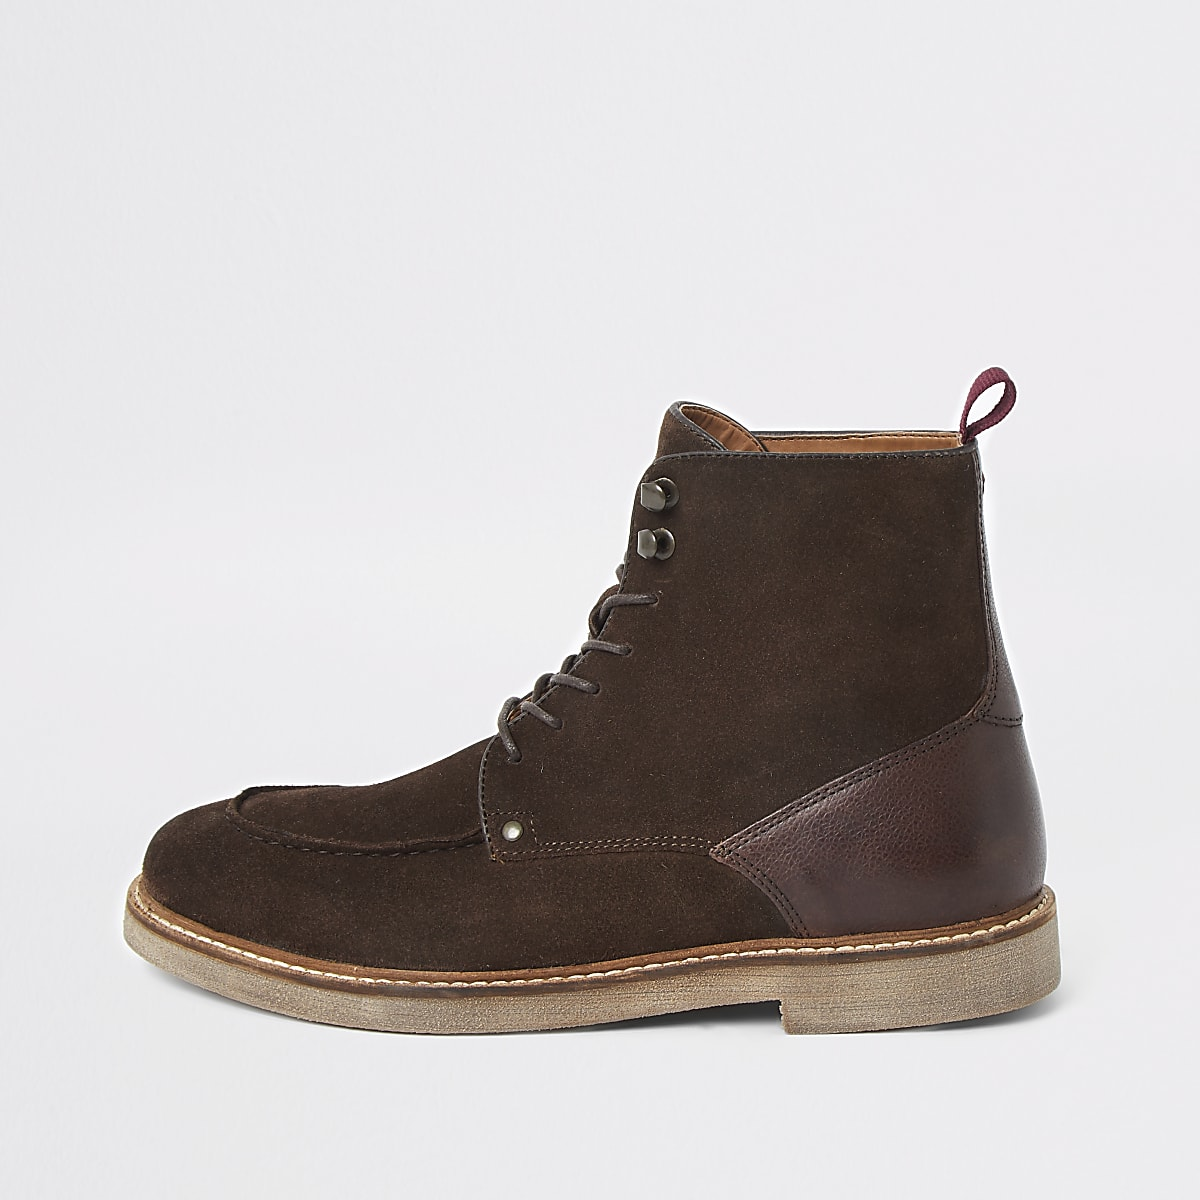 Dark brown suede apron toe lace-up boots